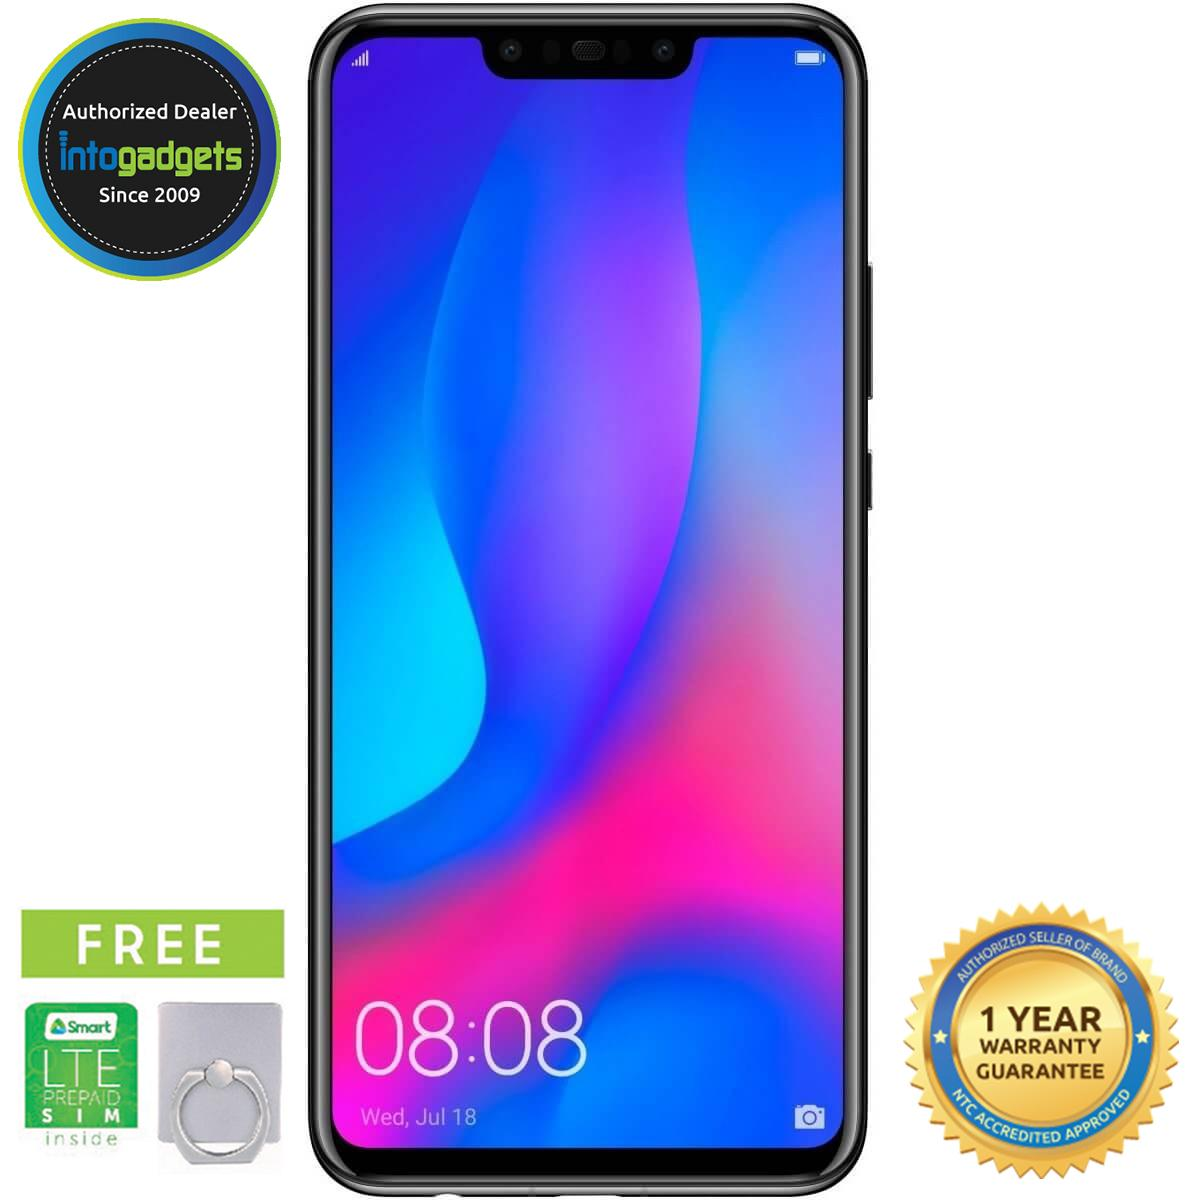 Huawei Nova 3 6GB RAM 128GB ROM FREE LTE Sim, Ring Holder